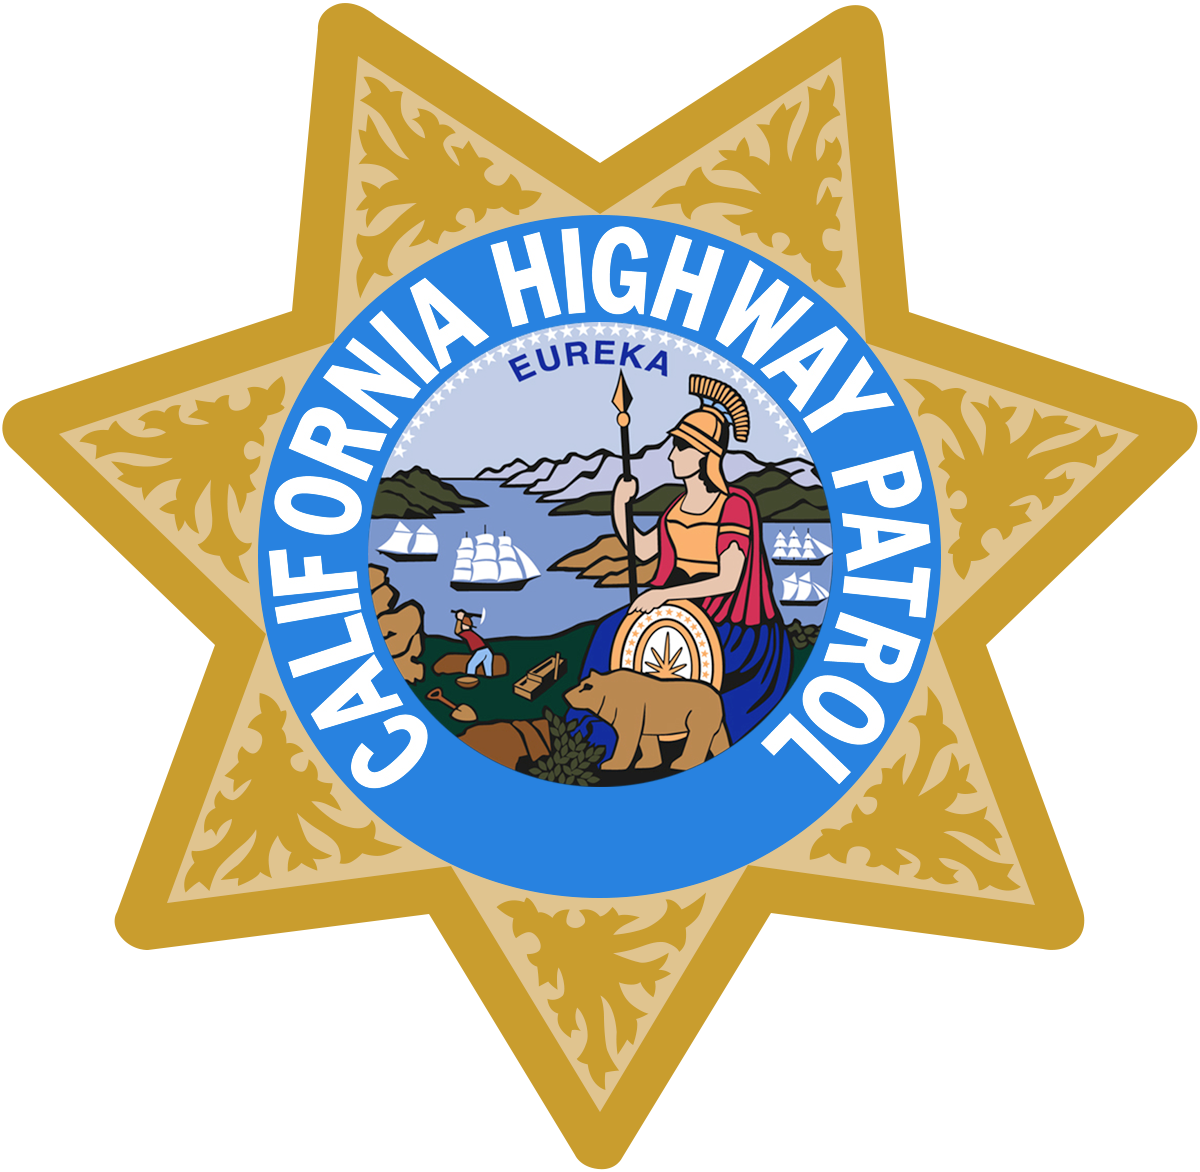 California Highway Patrol (CHP) logo